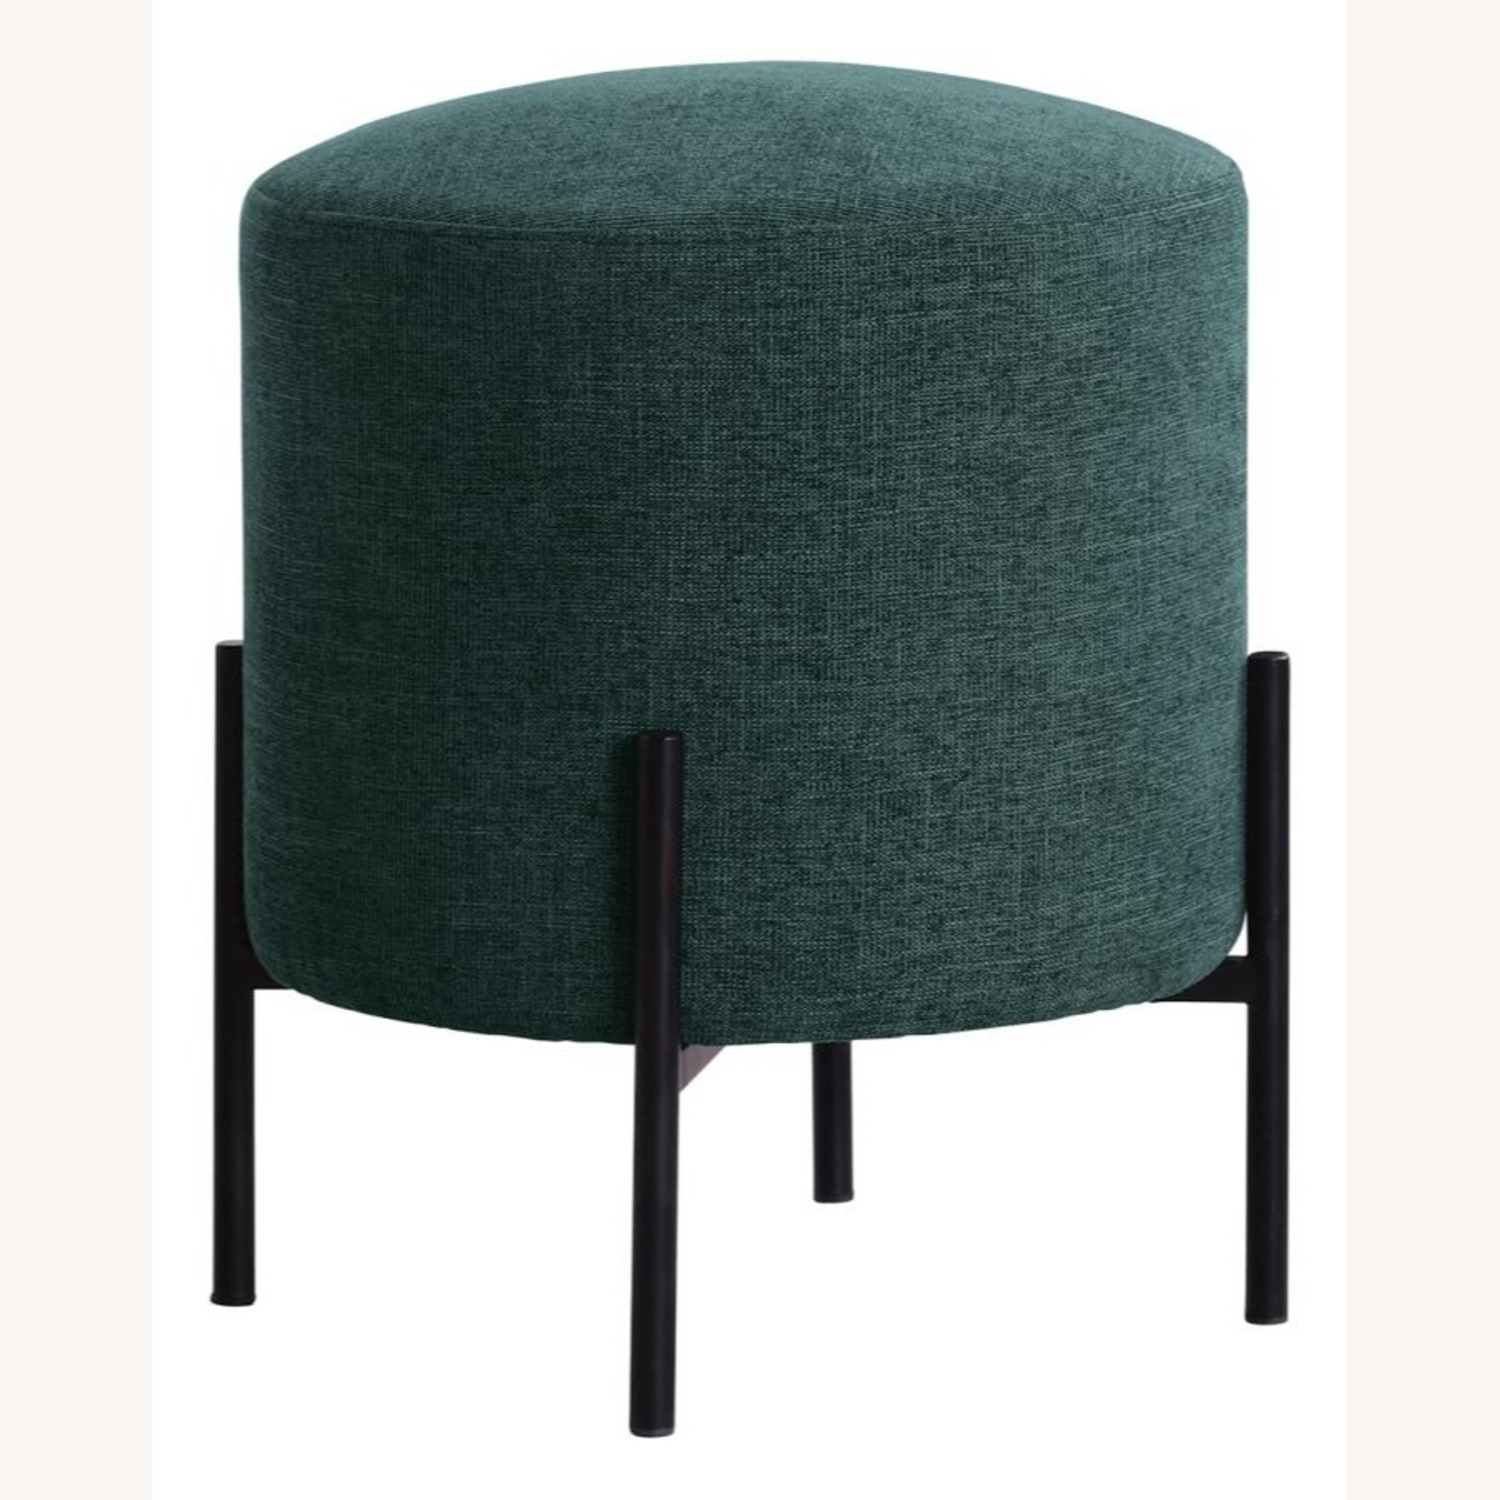 Ottoman In Teal & Chenille Upholstery W/Black Legs - image-0